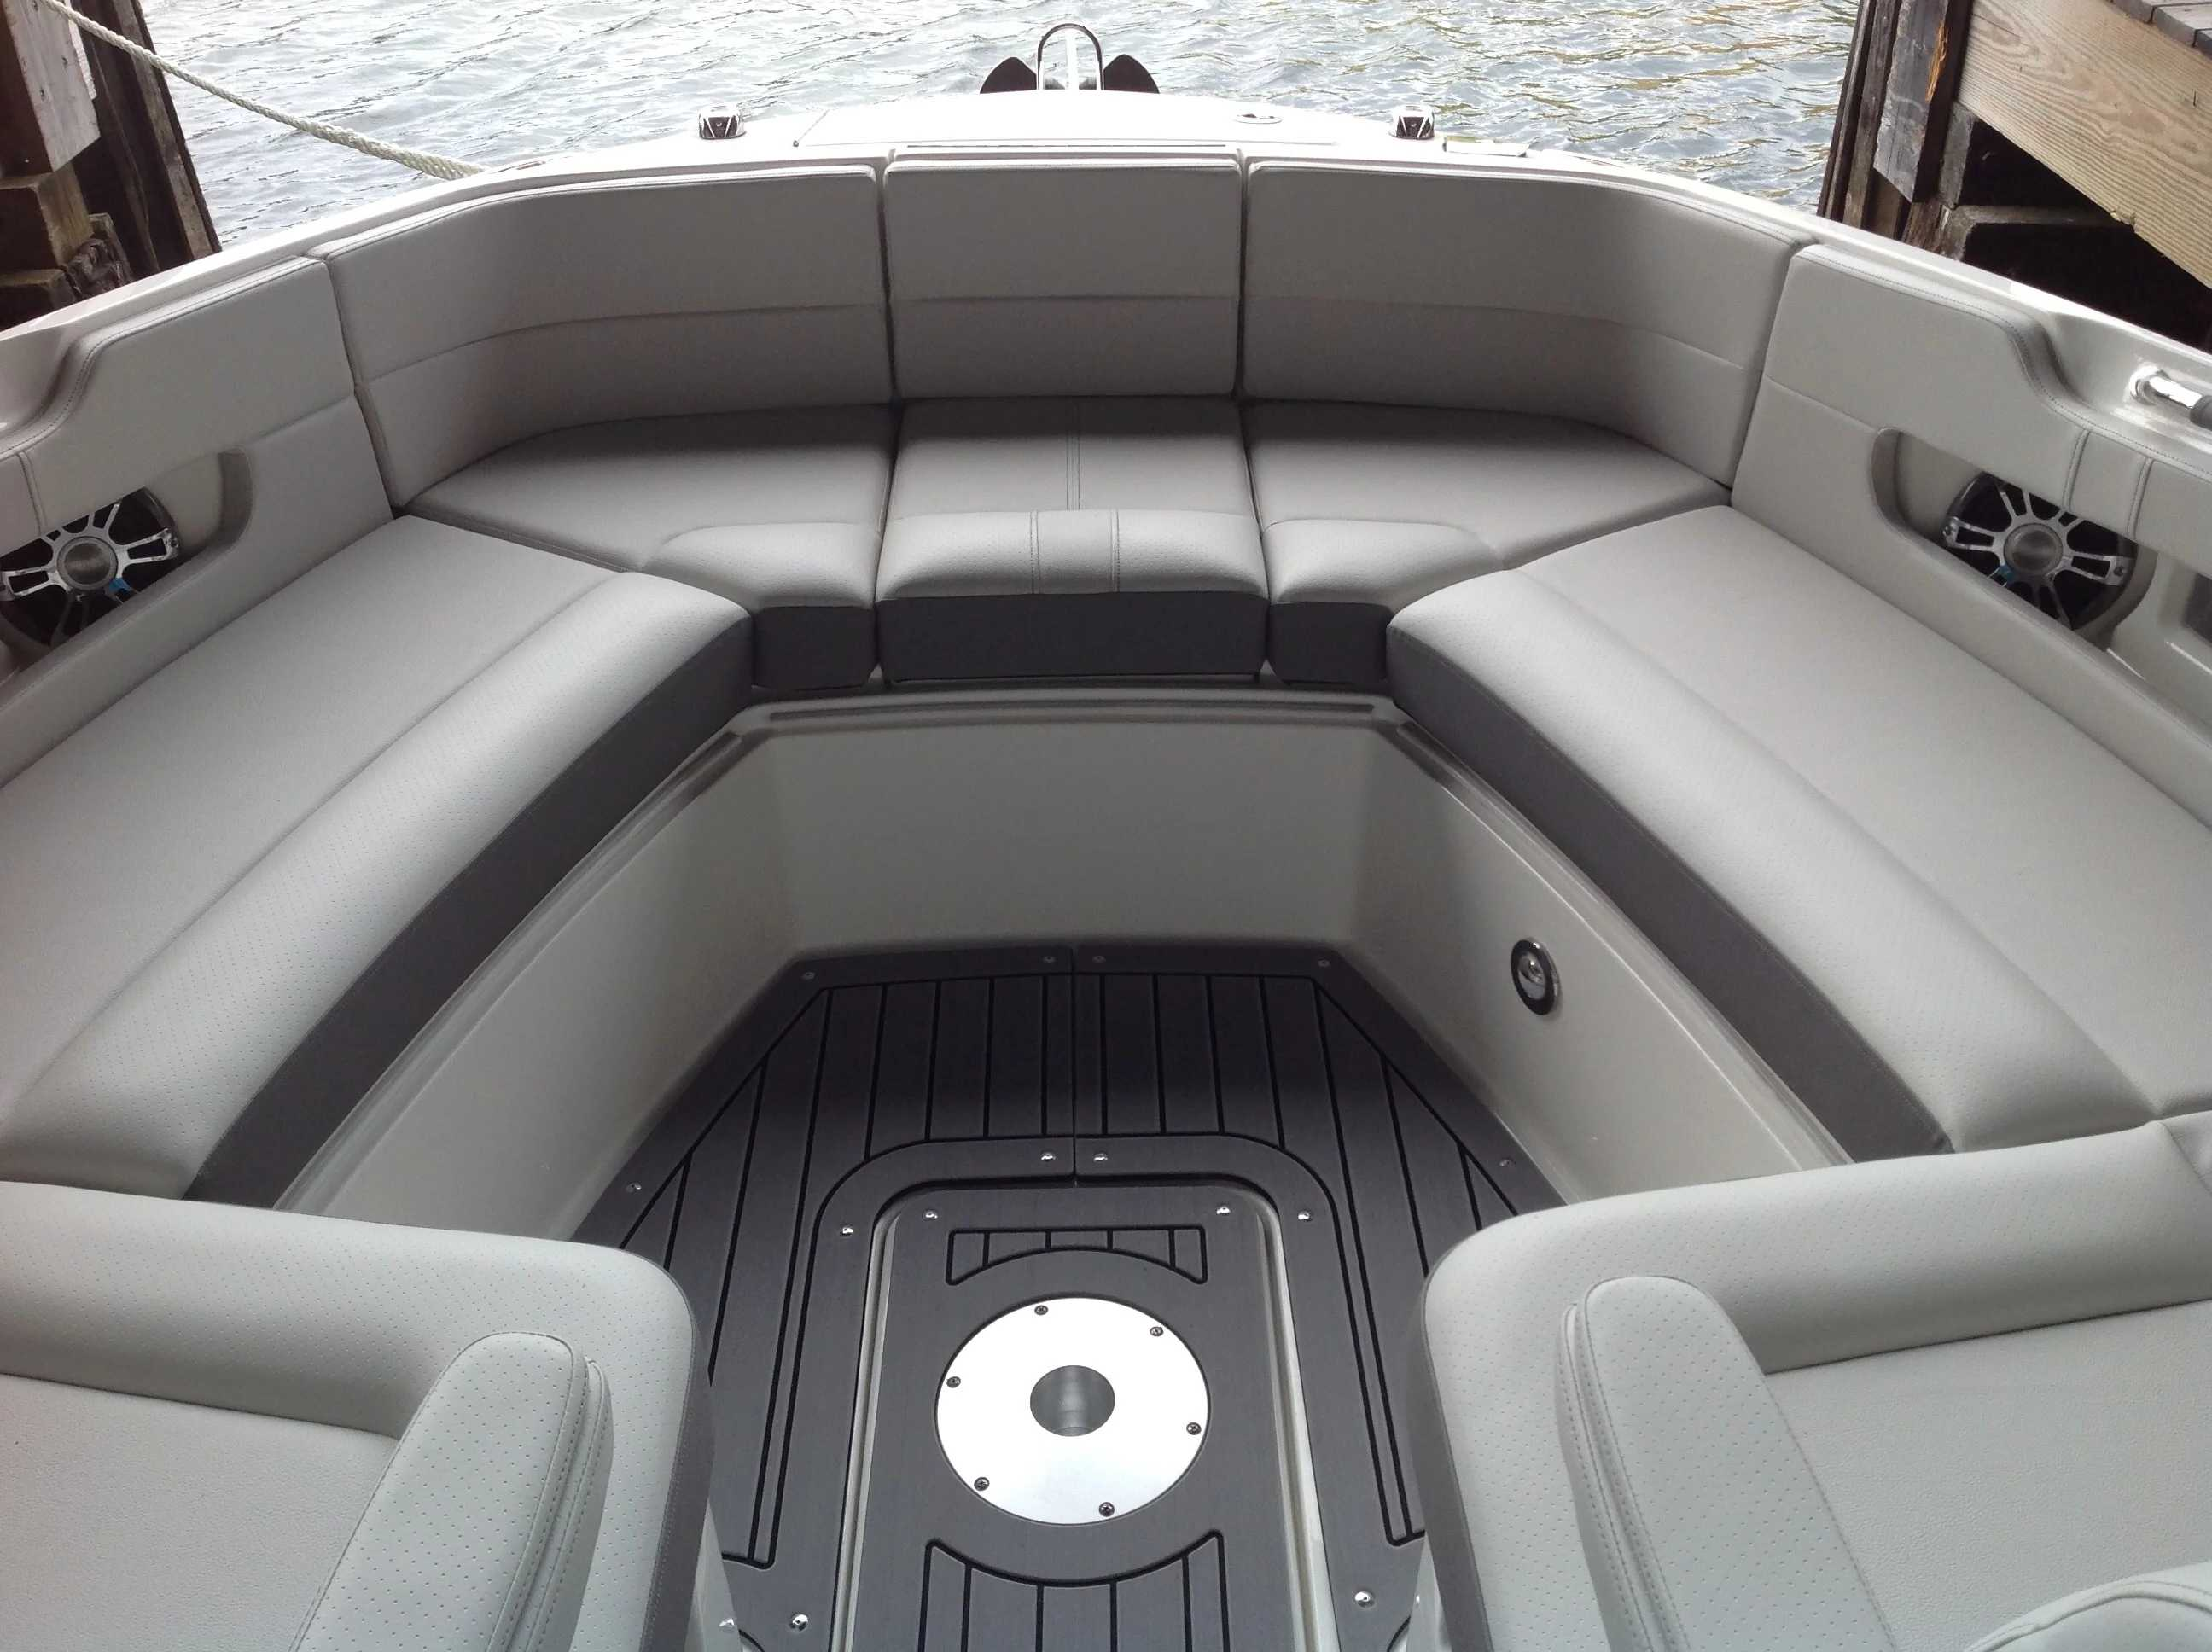 2021 Sea Ray boat for sale, model of the boat is 310 SLX & Image # 5 of 20